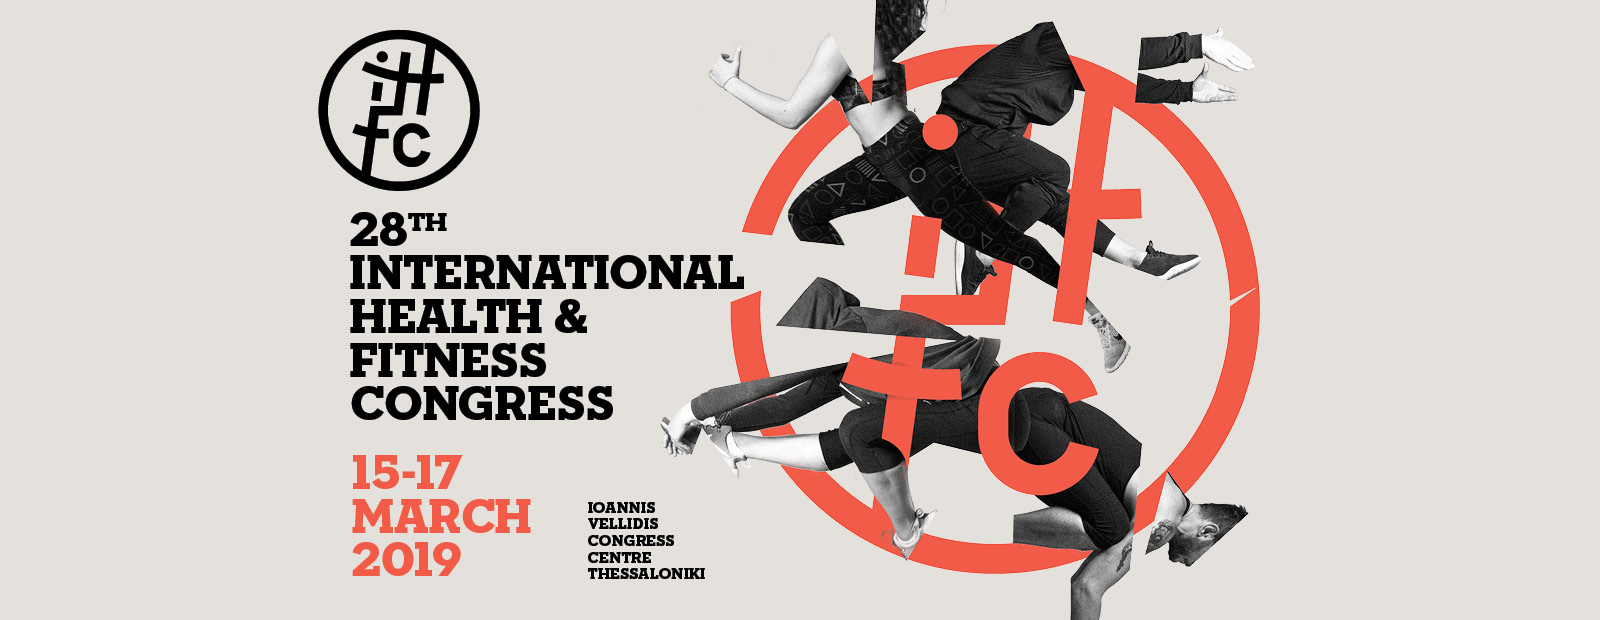 28th International Health & Fitness Congress by Grafts Hellas banner